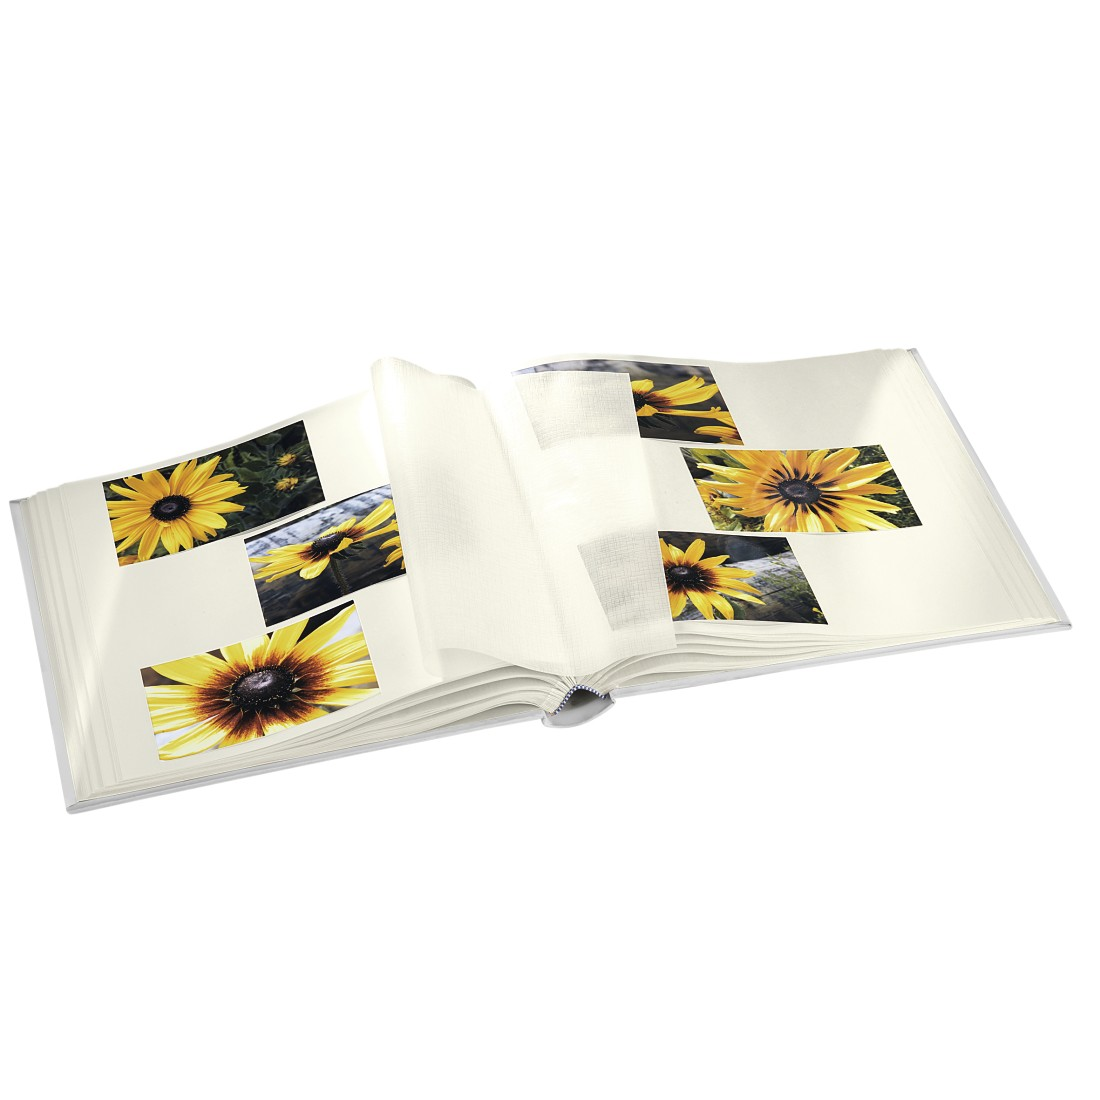 "awx High-Res Appliance - Hama, ""Rustico"" Jumbo Album, 30 x 30 cm, 100 white pages, Door Knocker"